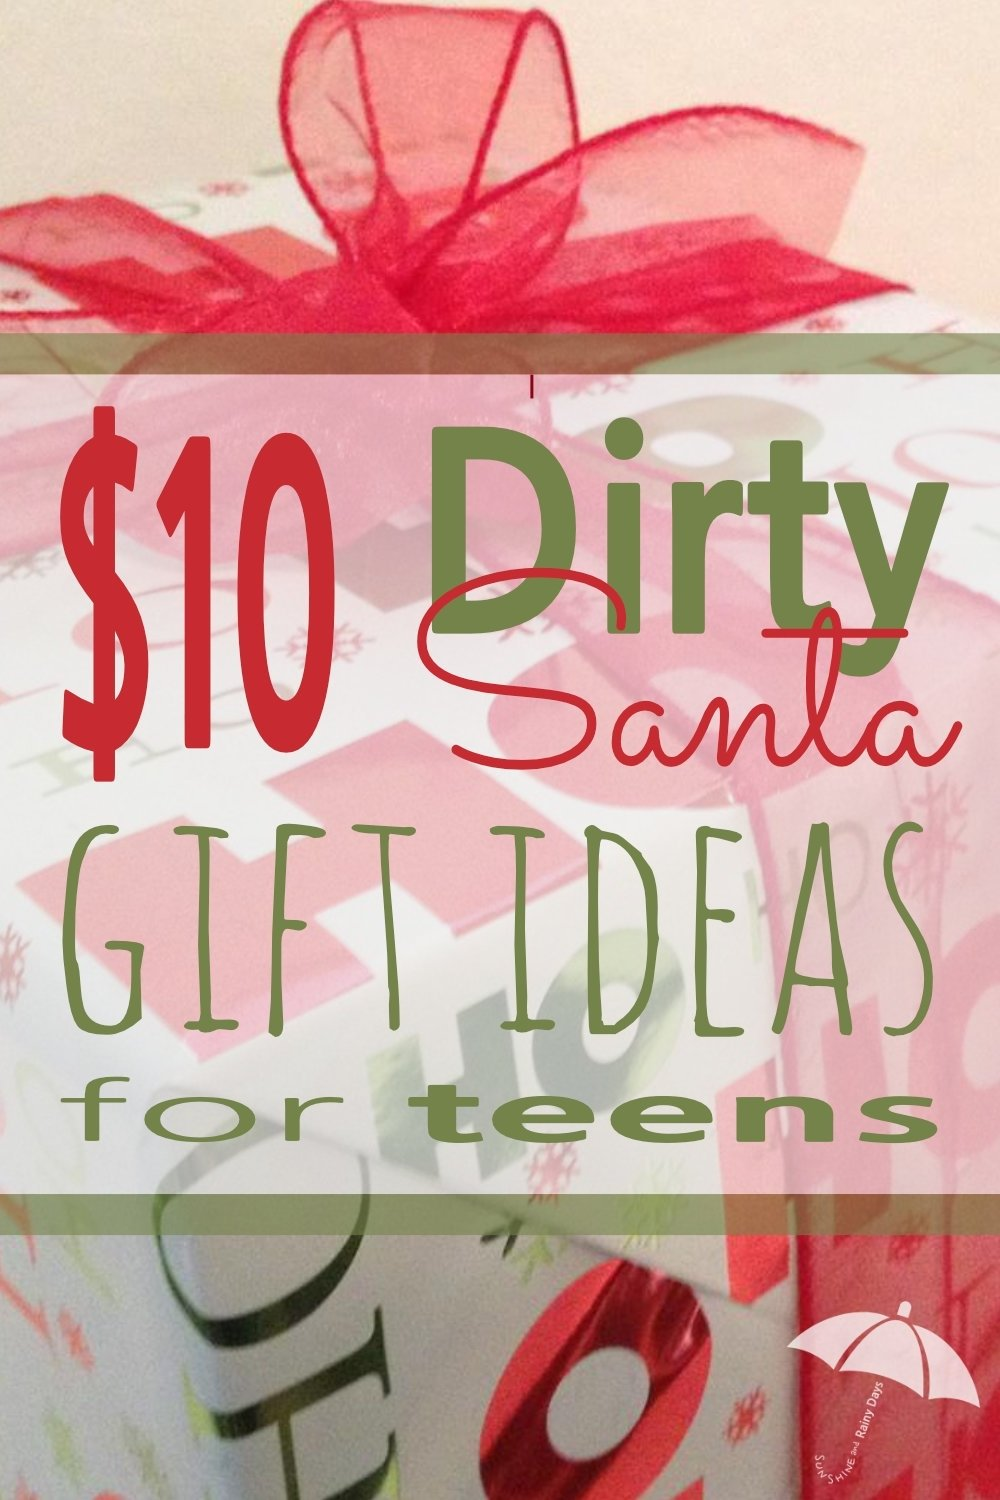 $10 dirty santa gift ideas for teens - sunshine and rainy days